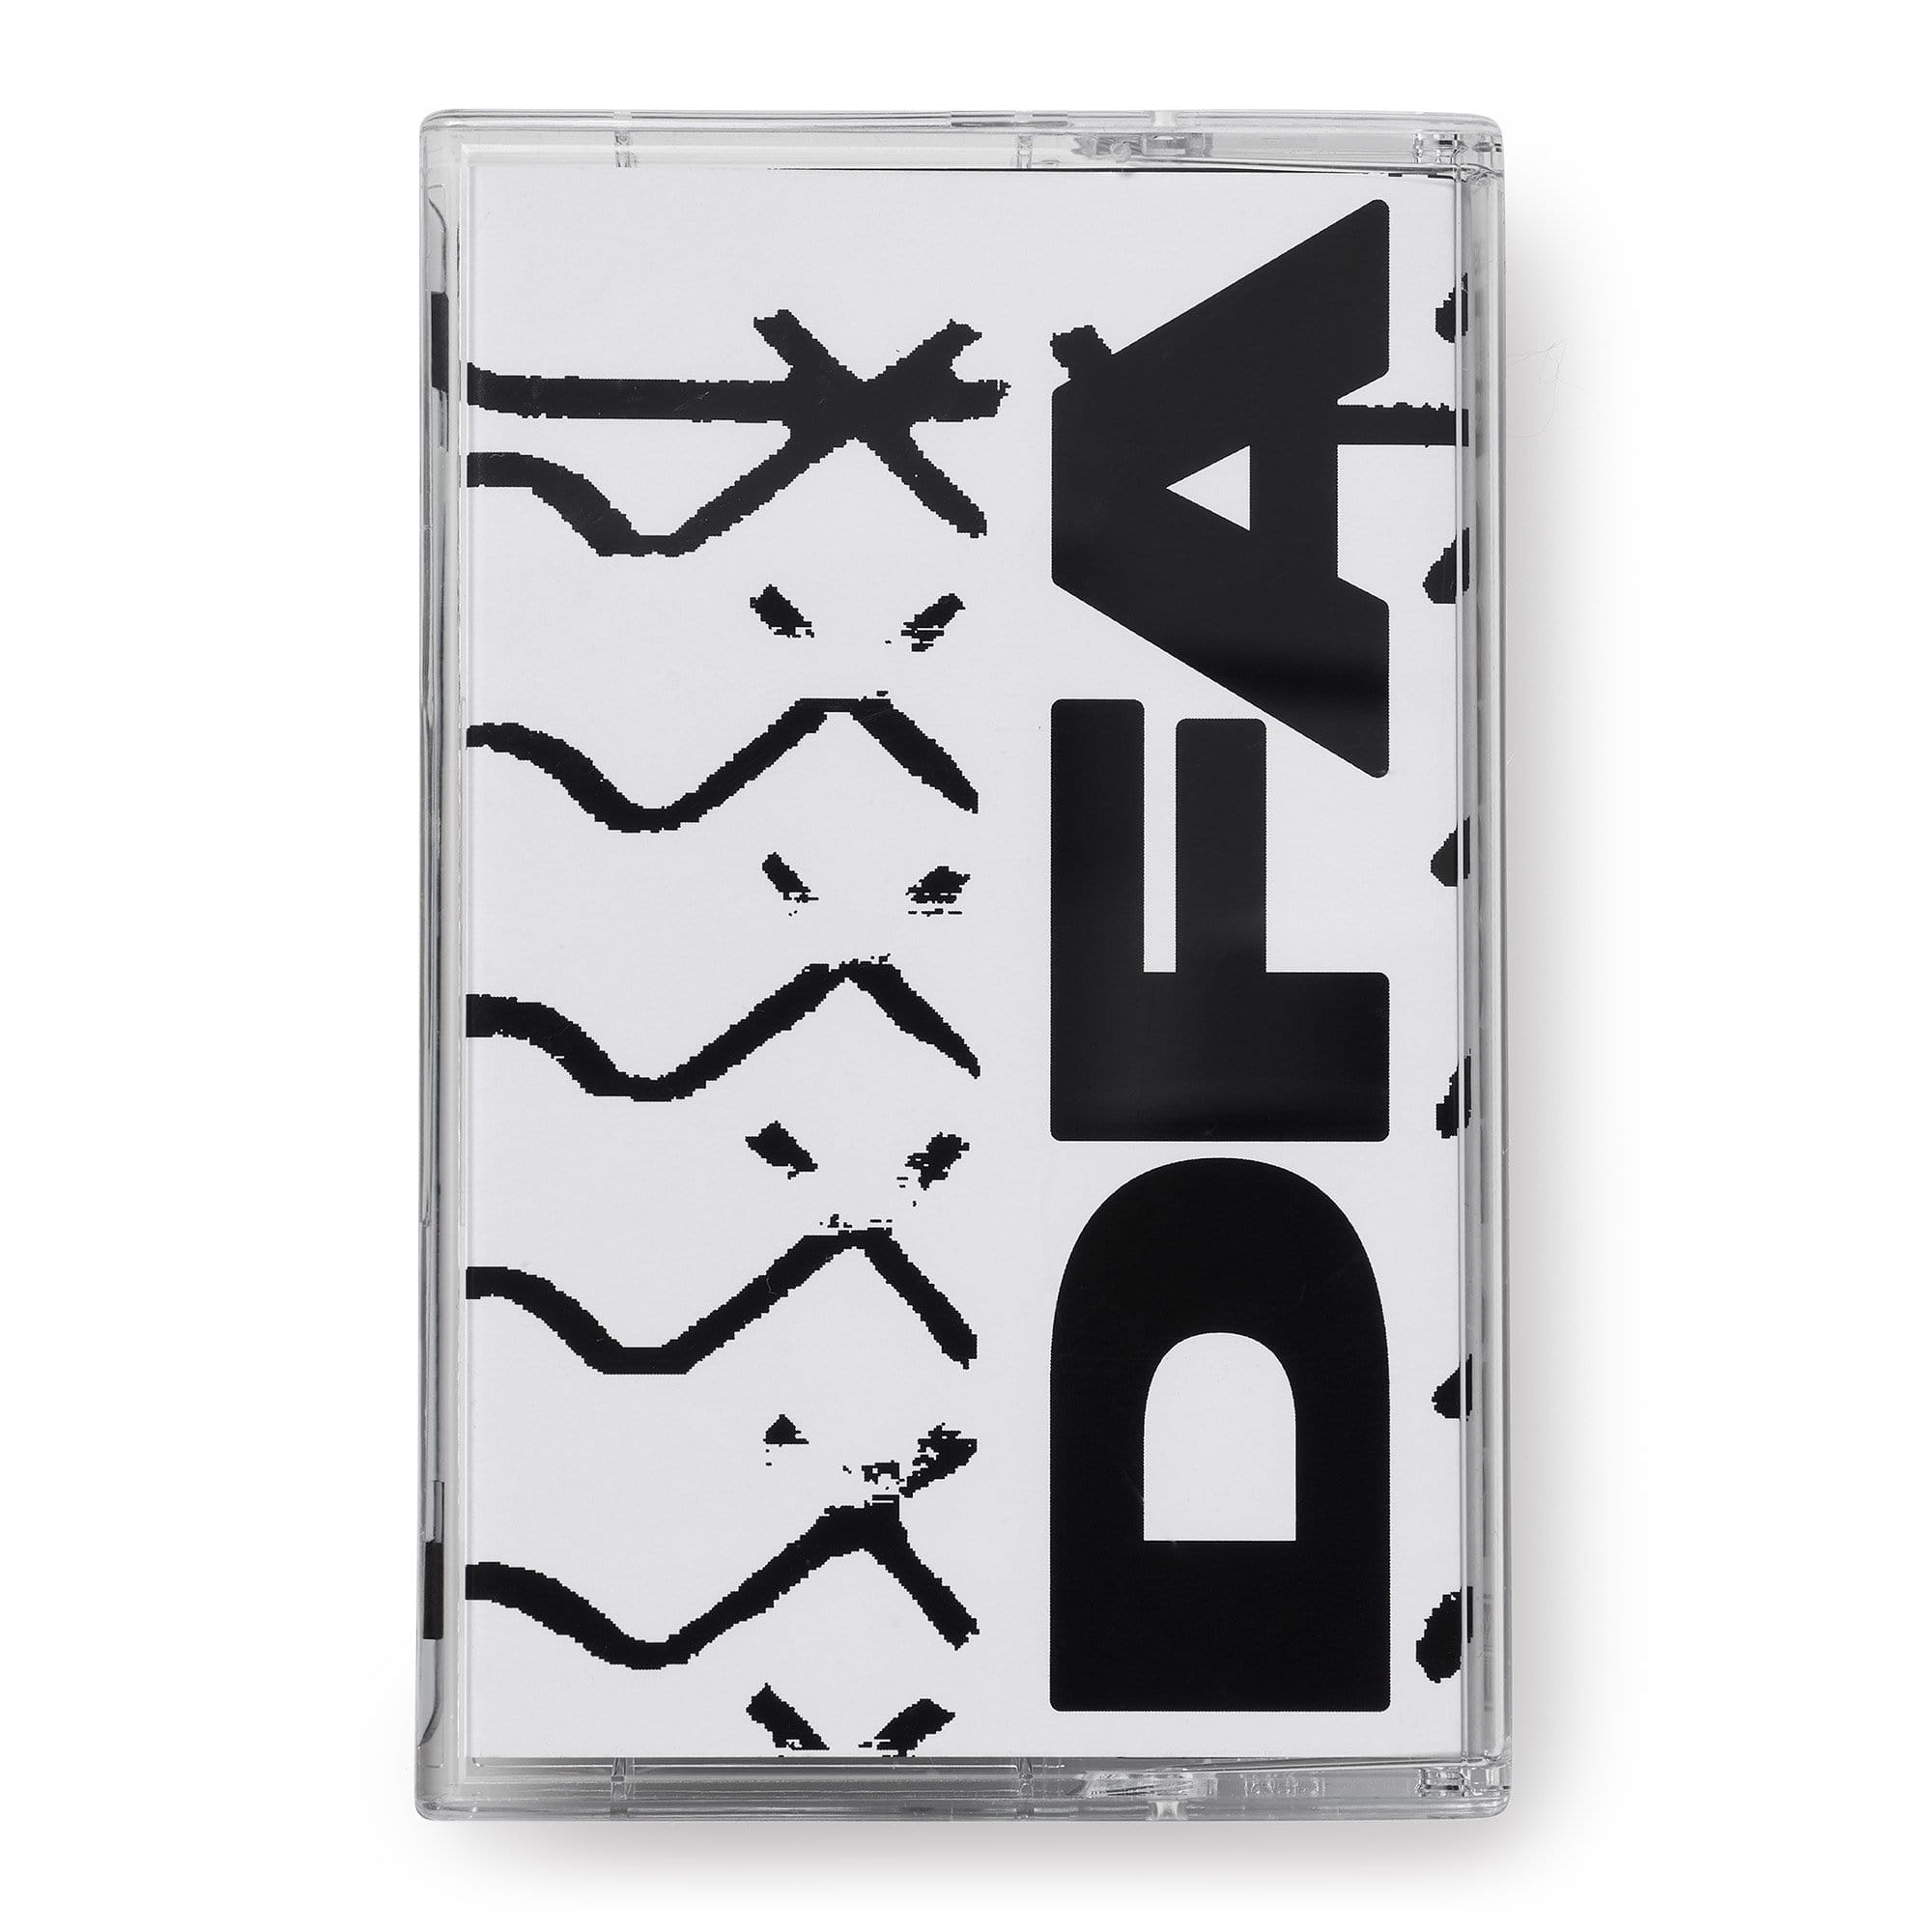 Carhartt WIP Accessories Relevant Parties - DFA Mixtape